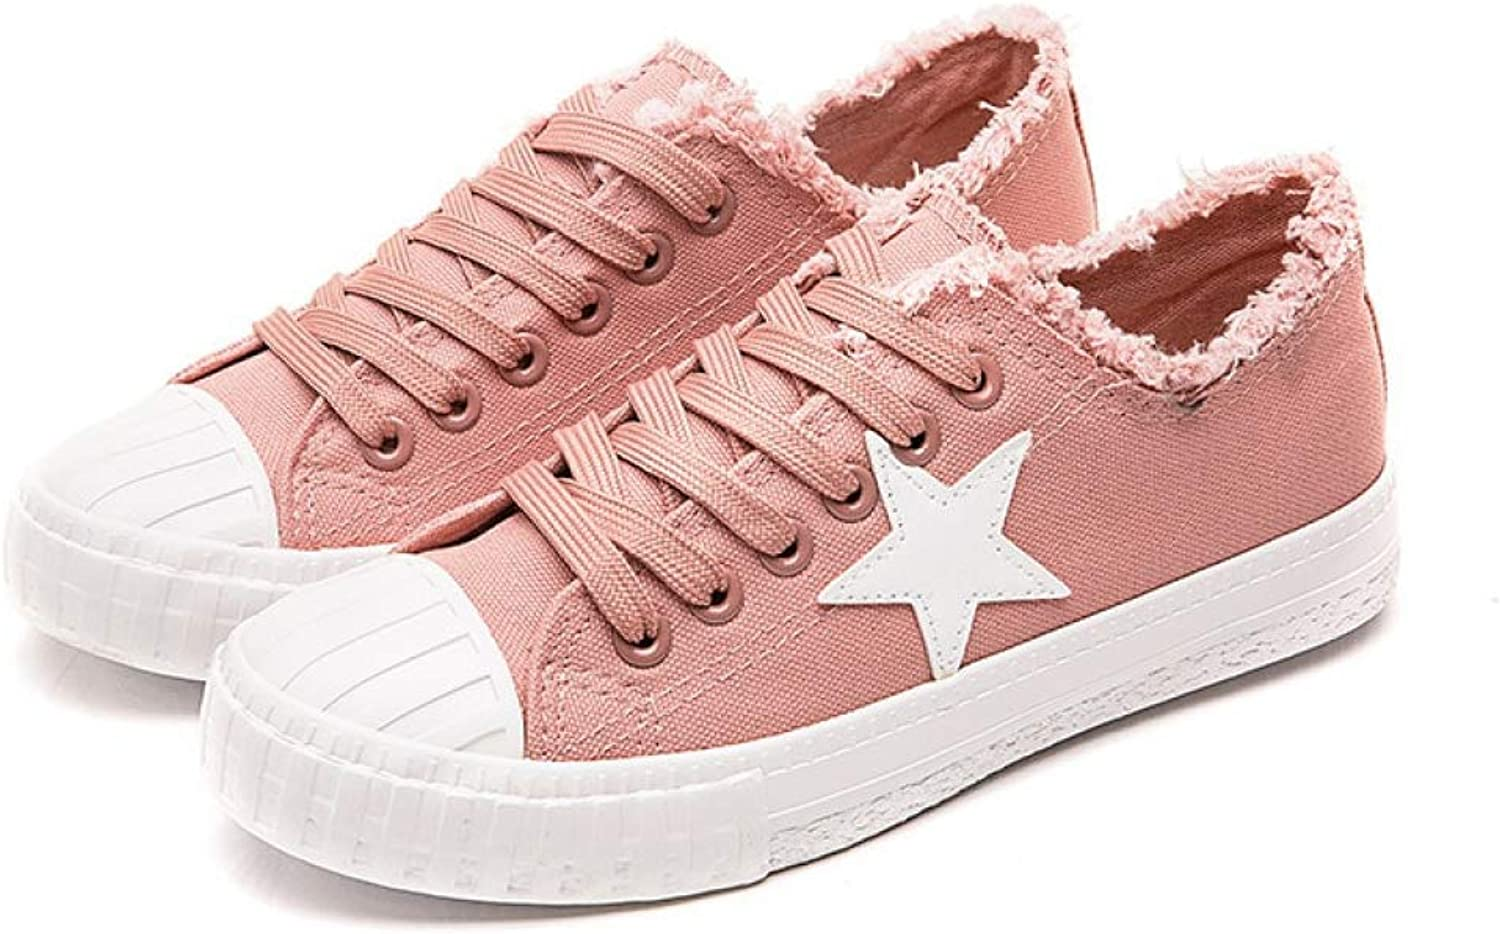 XDH-RTS Spring Summer Womens Sneakers Star Ladies Flat Casual shoes Canvas shoes Lace-Up Espadrilles Trendy Plimsolls